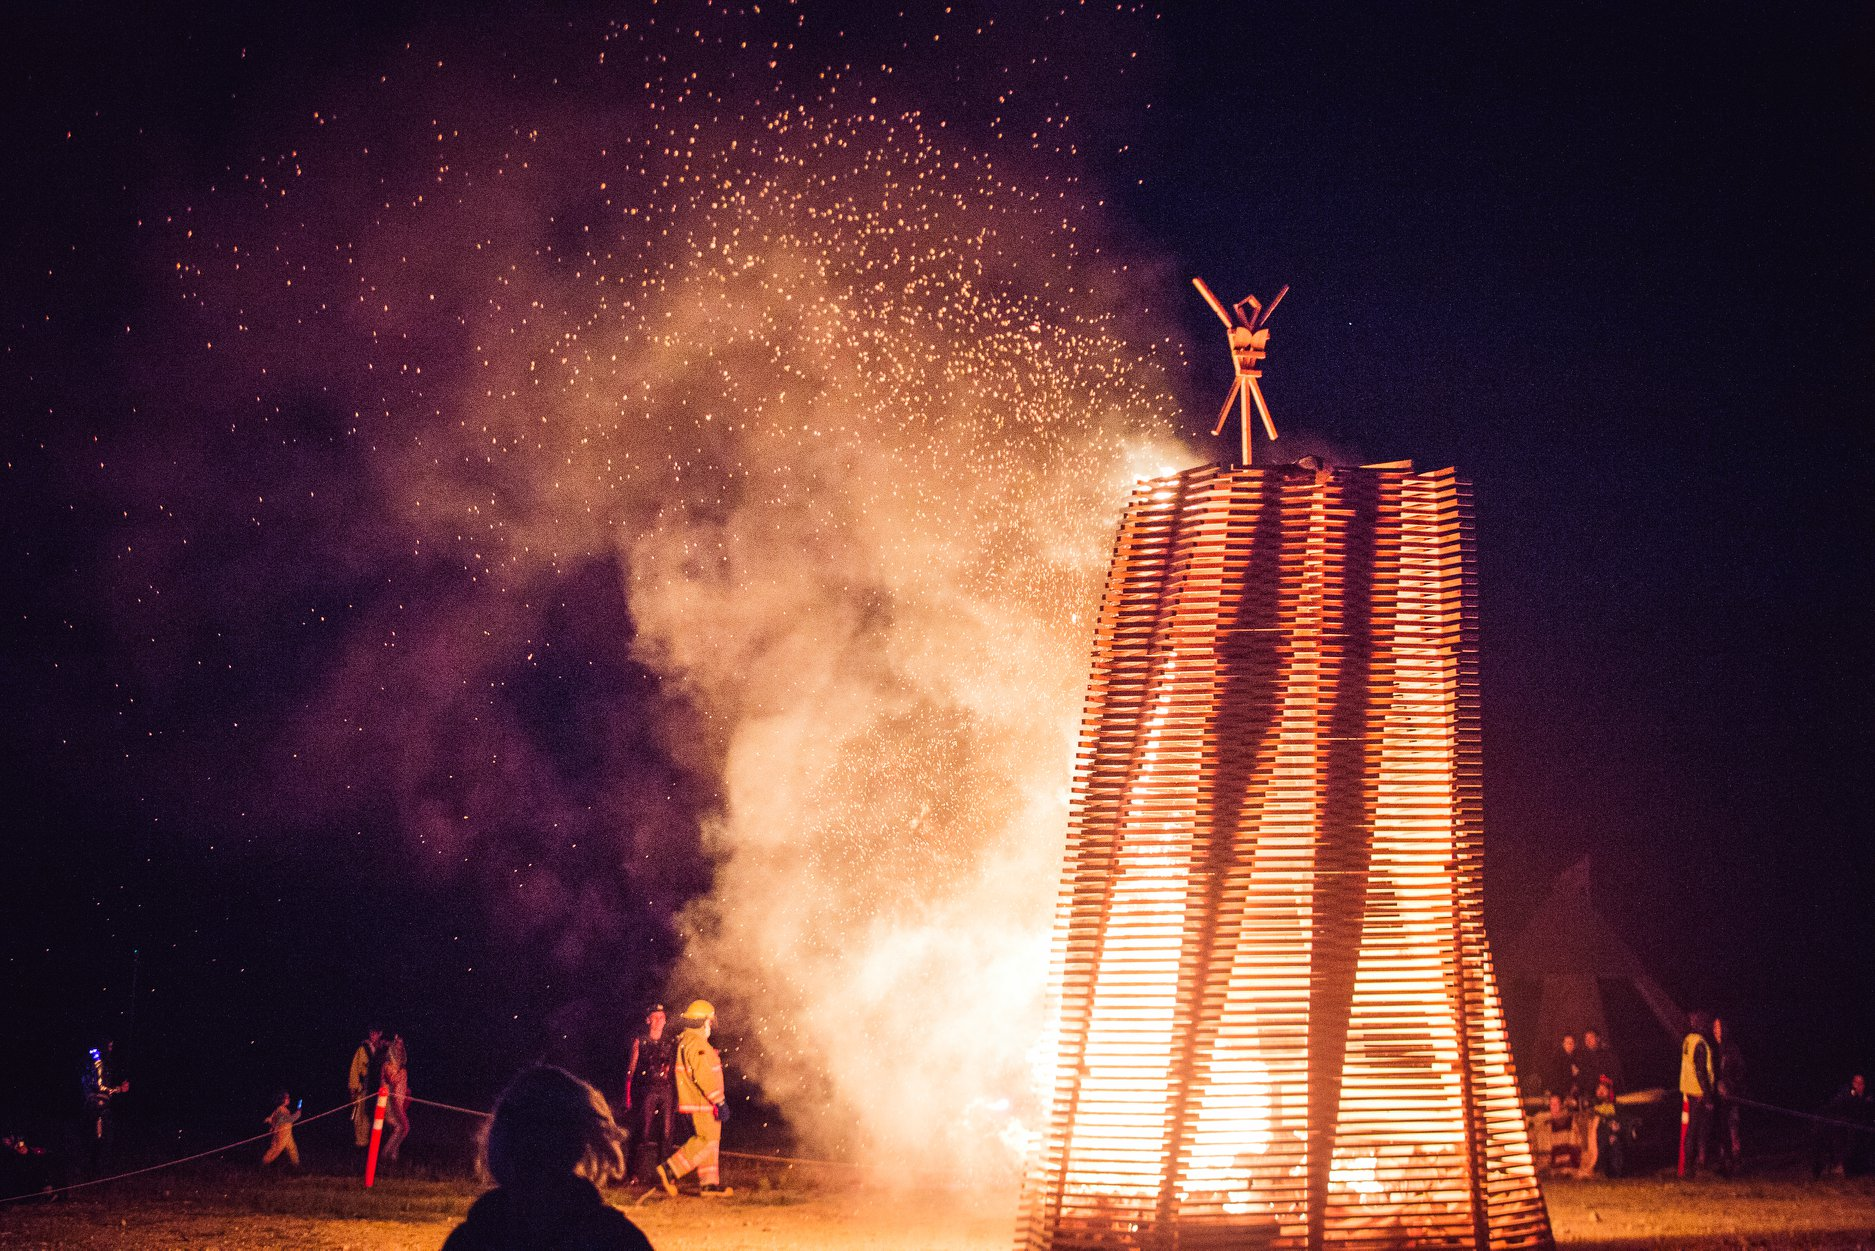 Finally, on the Saturday night of Otherworld, our parametric effigy burned bright (and fast!) to the delight of all 800 people in attendance (including Robazzo founders, Andrew and Tinka).